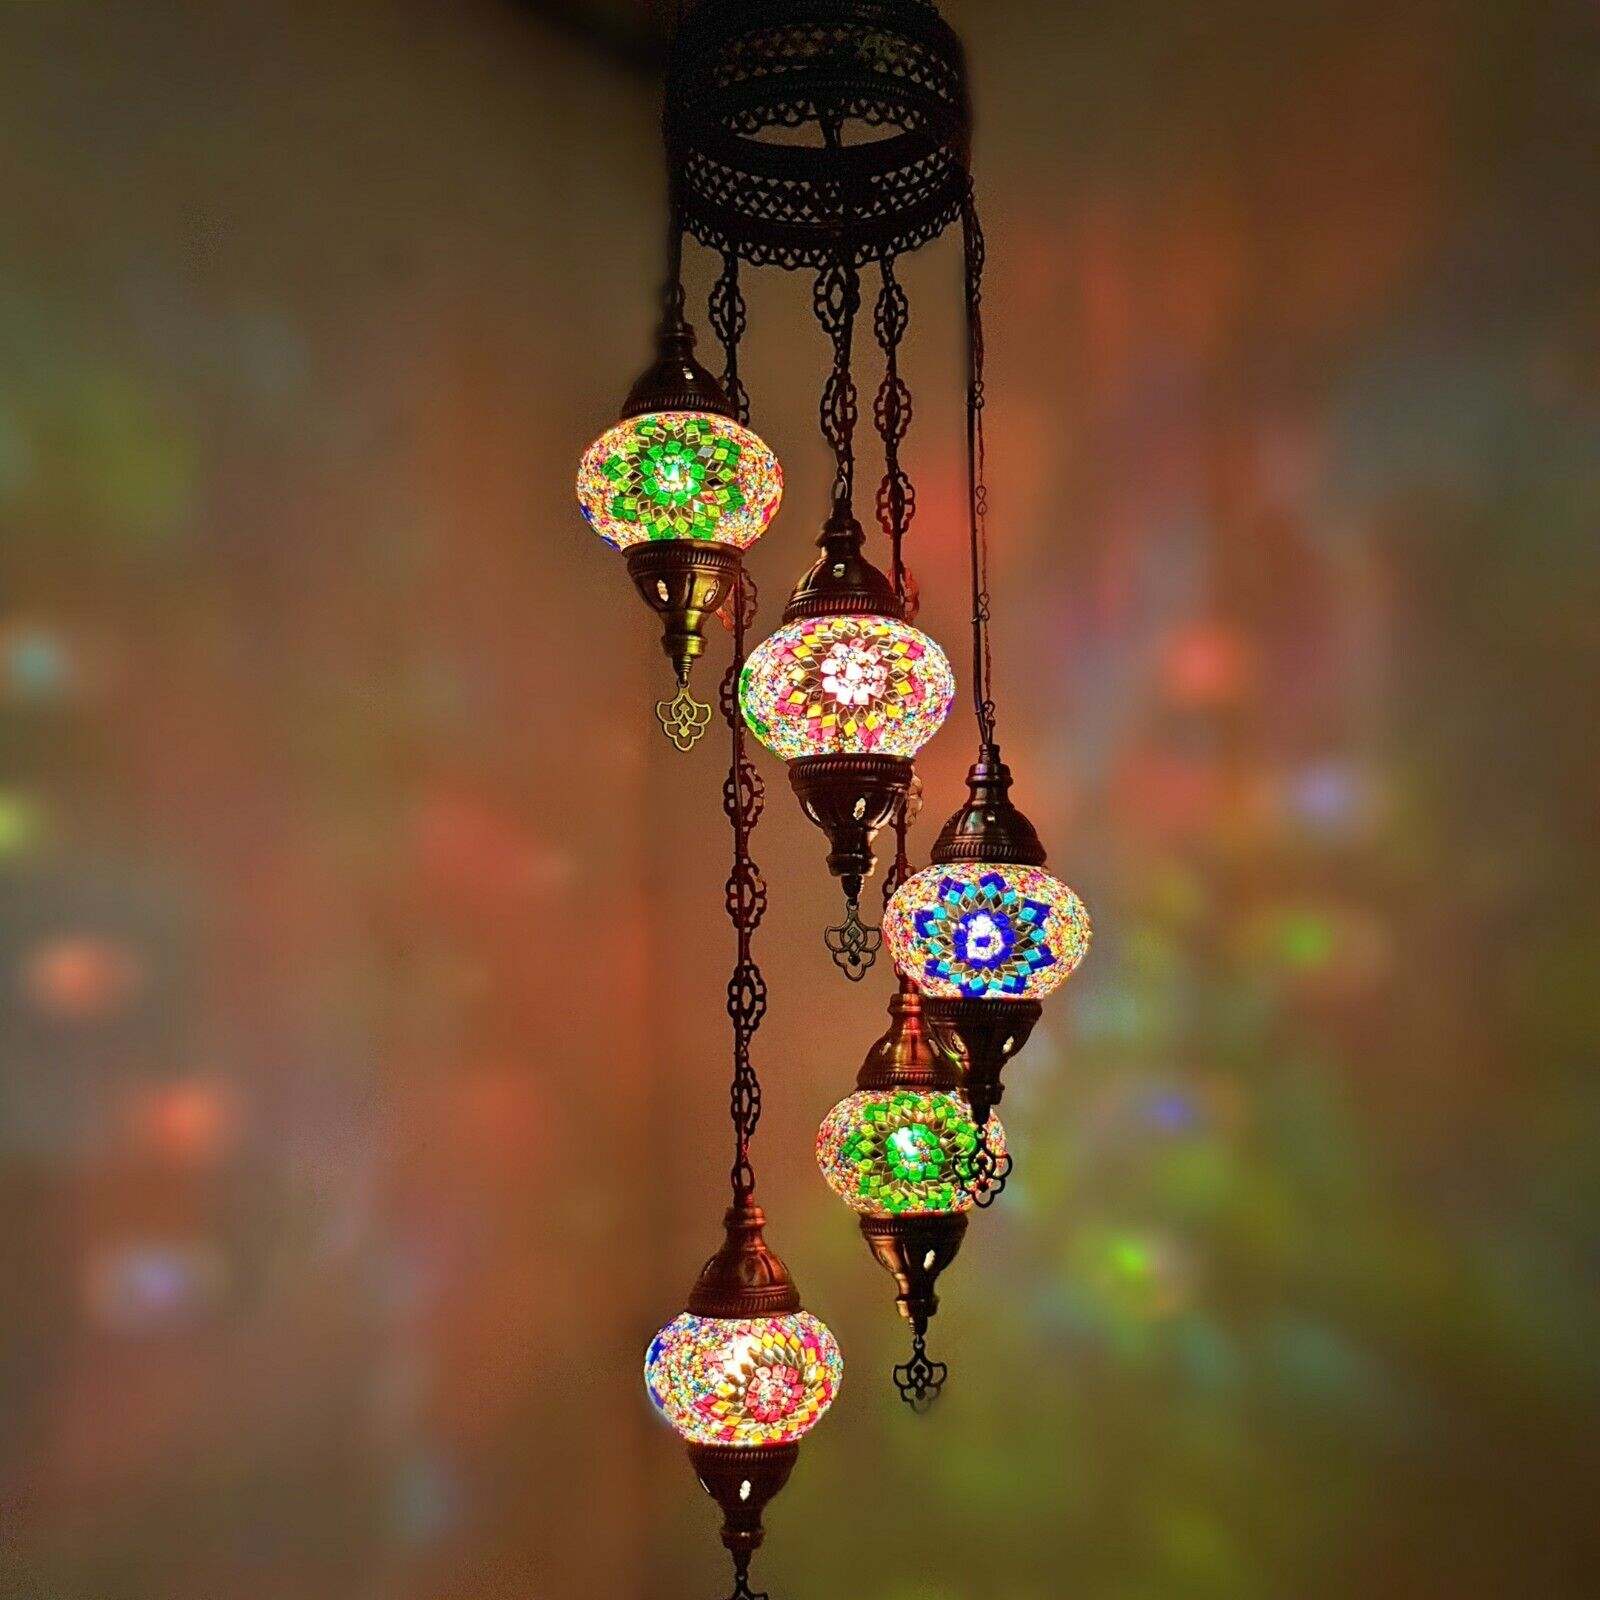 Authentic Turkish Moroccan Glass Mosaic Hanging Lamp Ceiling Light Chandeliers Ebay